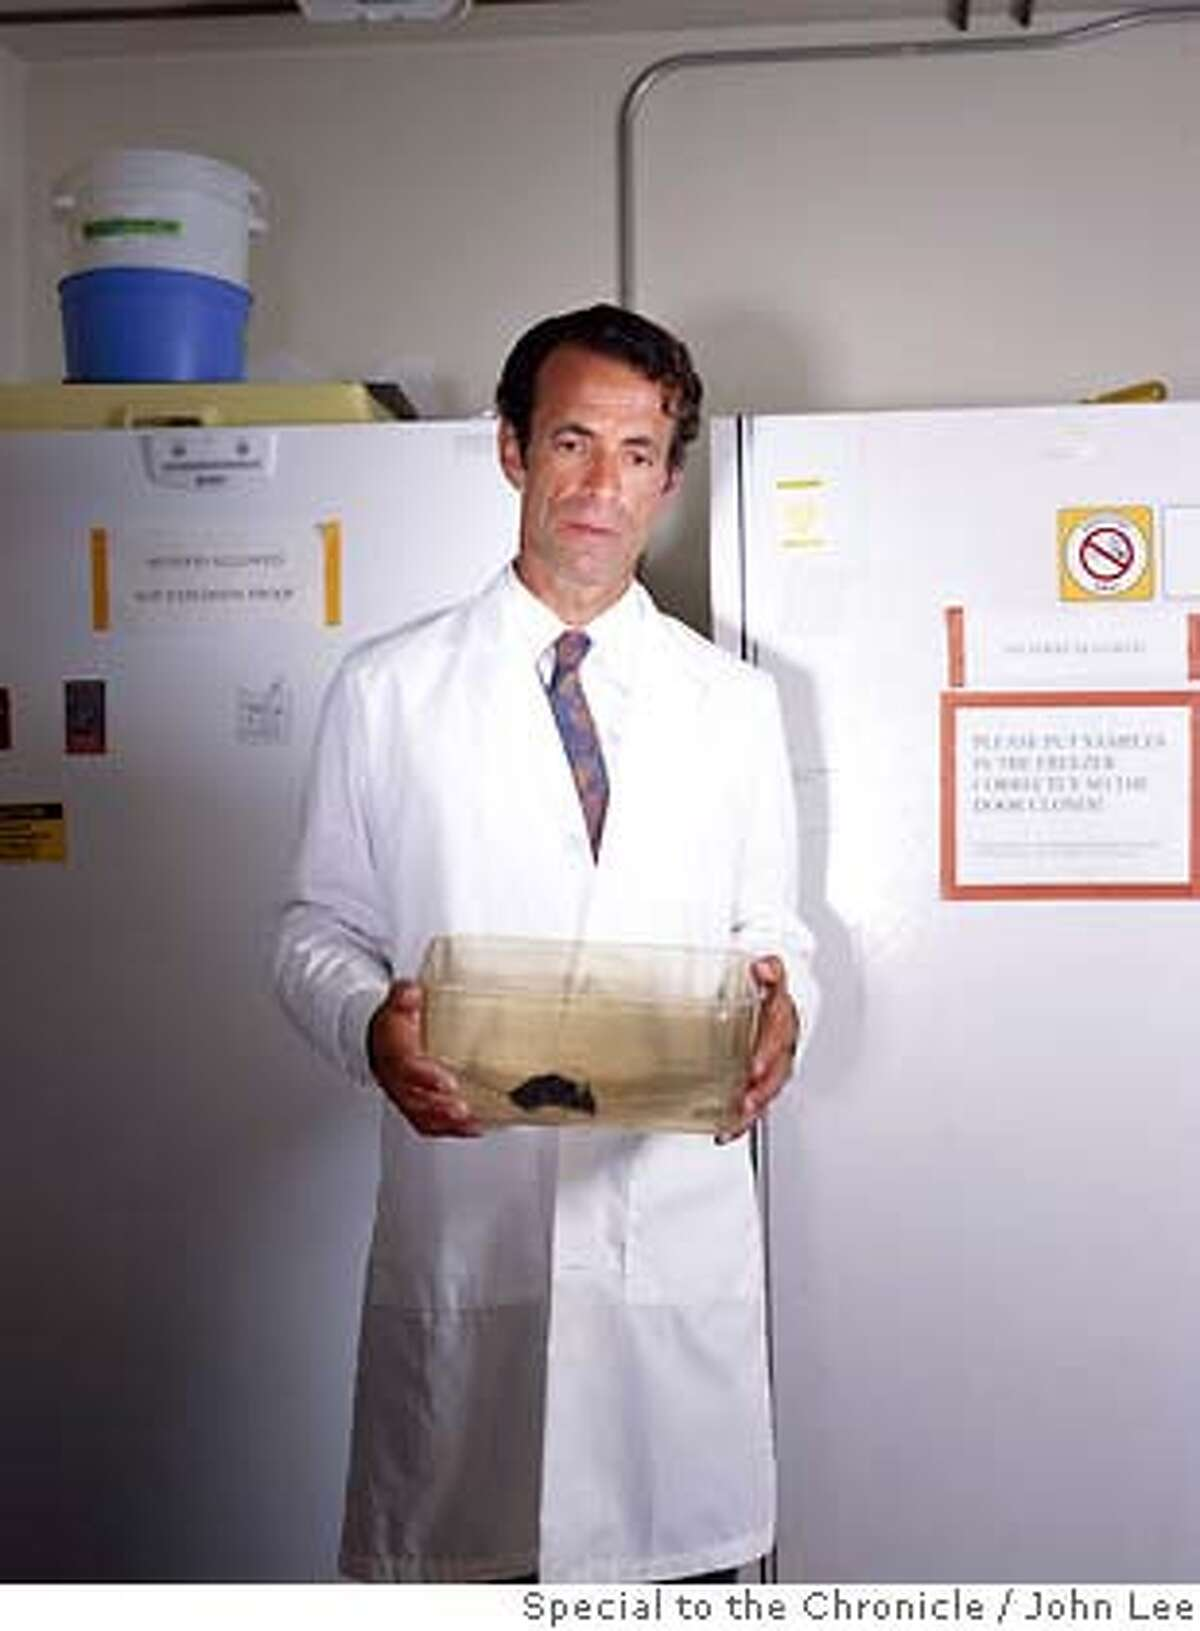 CALORIE_RESTRICTION_06_JOHNLEE.JPG BERKELEY, CALIFORNIA - AUG 13: Calorie restriction researcher Dr. Marc Hellerstein (cq), holding a research mouse inside his laboratory at the University of California's Department of Nutritional Sciences building. By JOHN LEE/